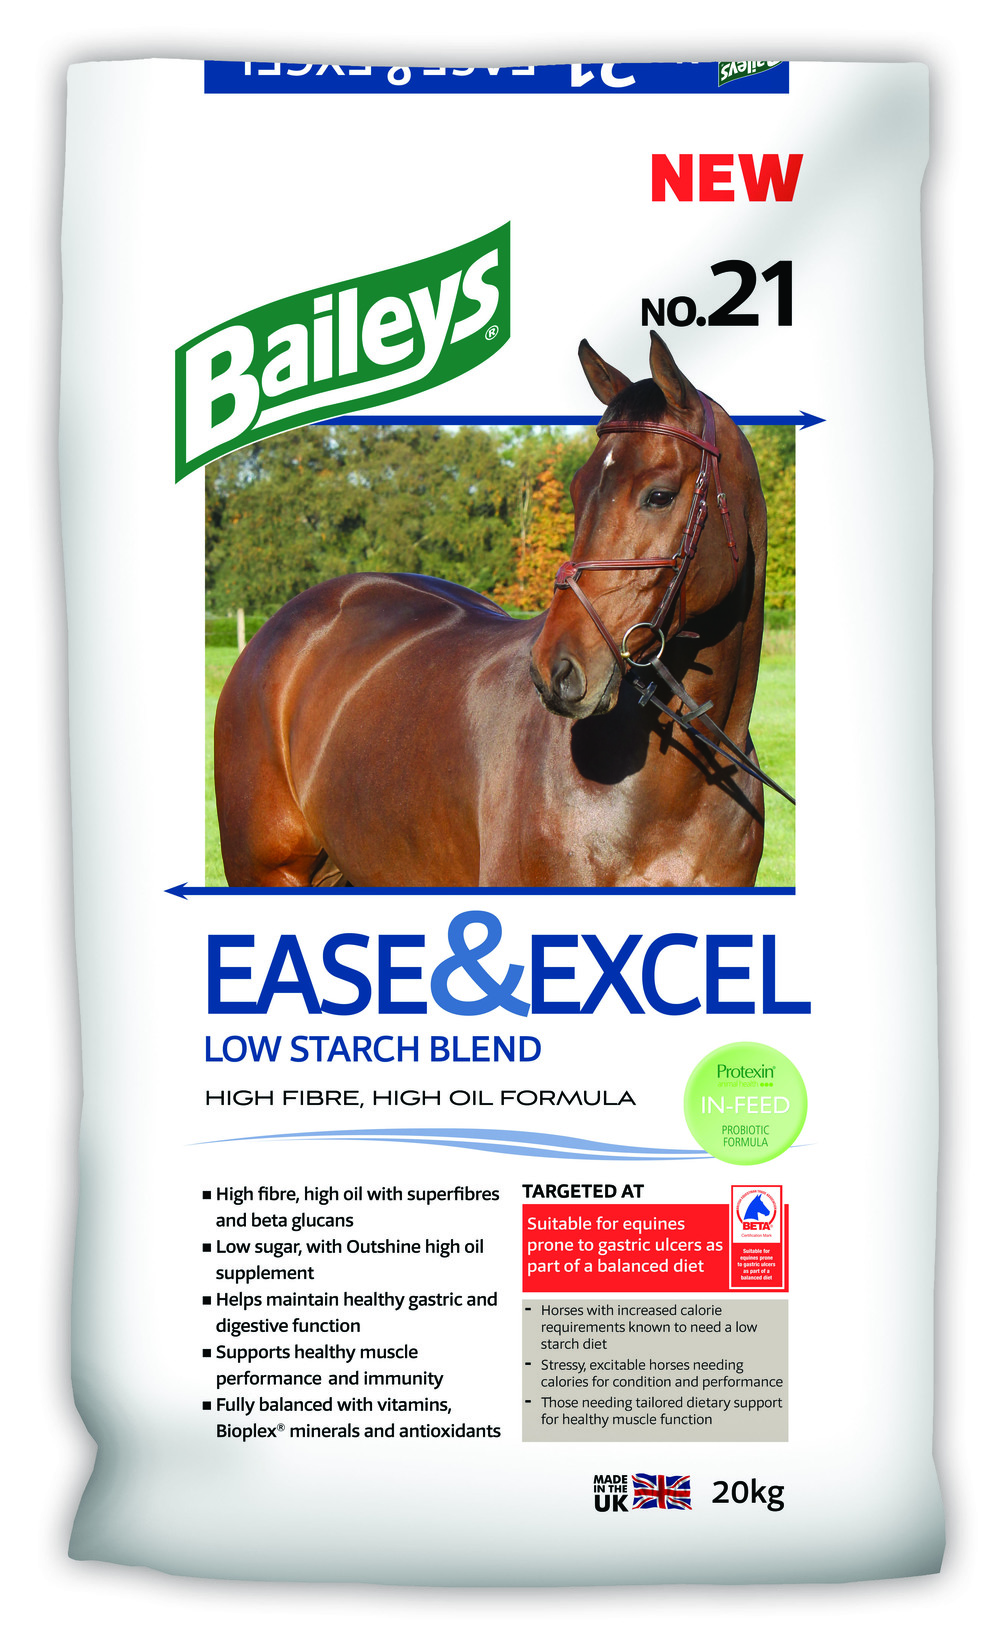 Baileys Ease & Excel has also been granted BETA's new approval mark